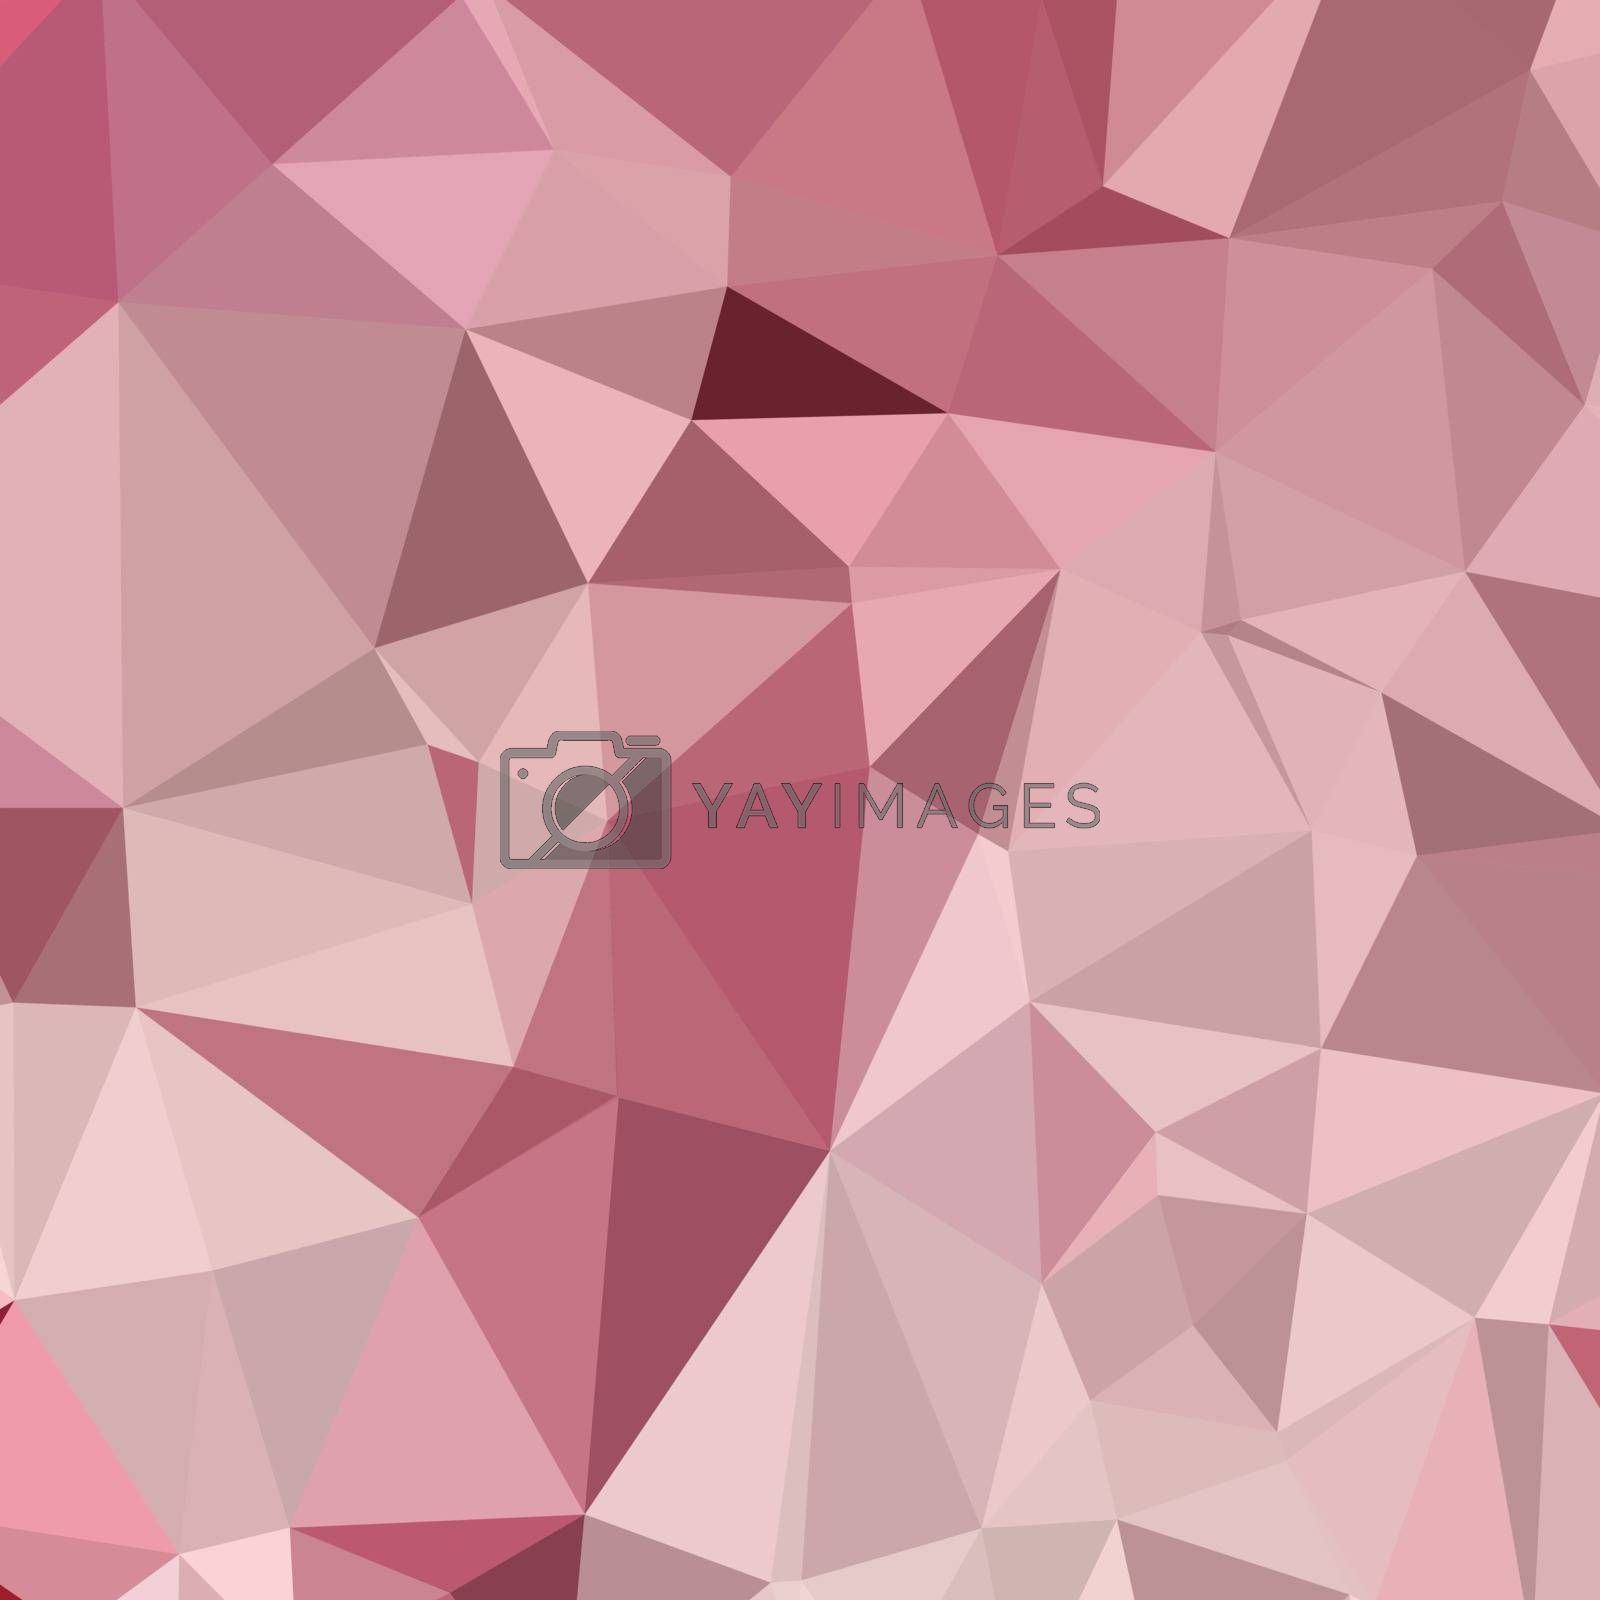 Low polygon style illustration of a carnation pink abstract geometric background.